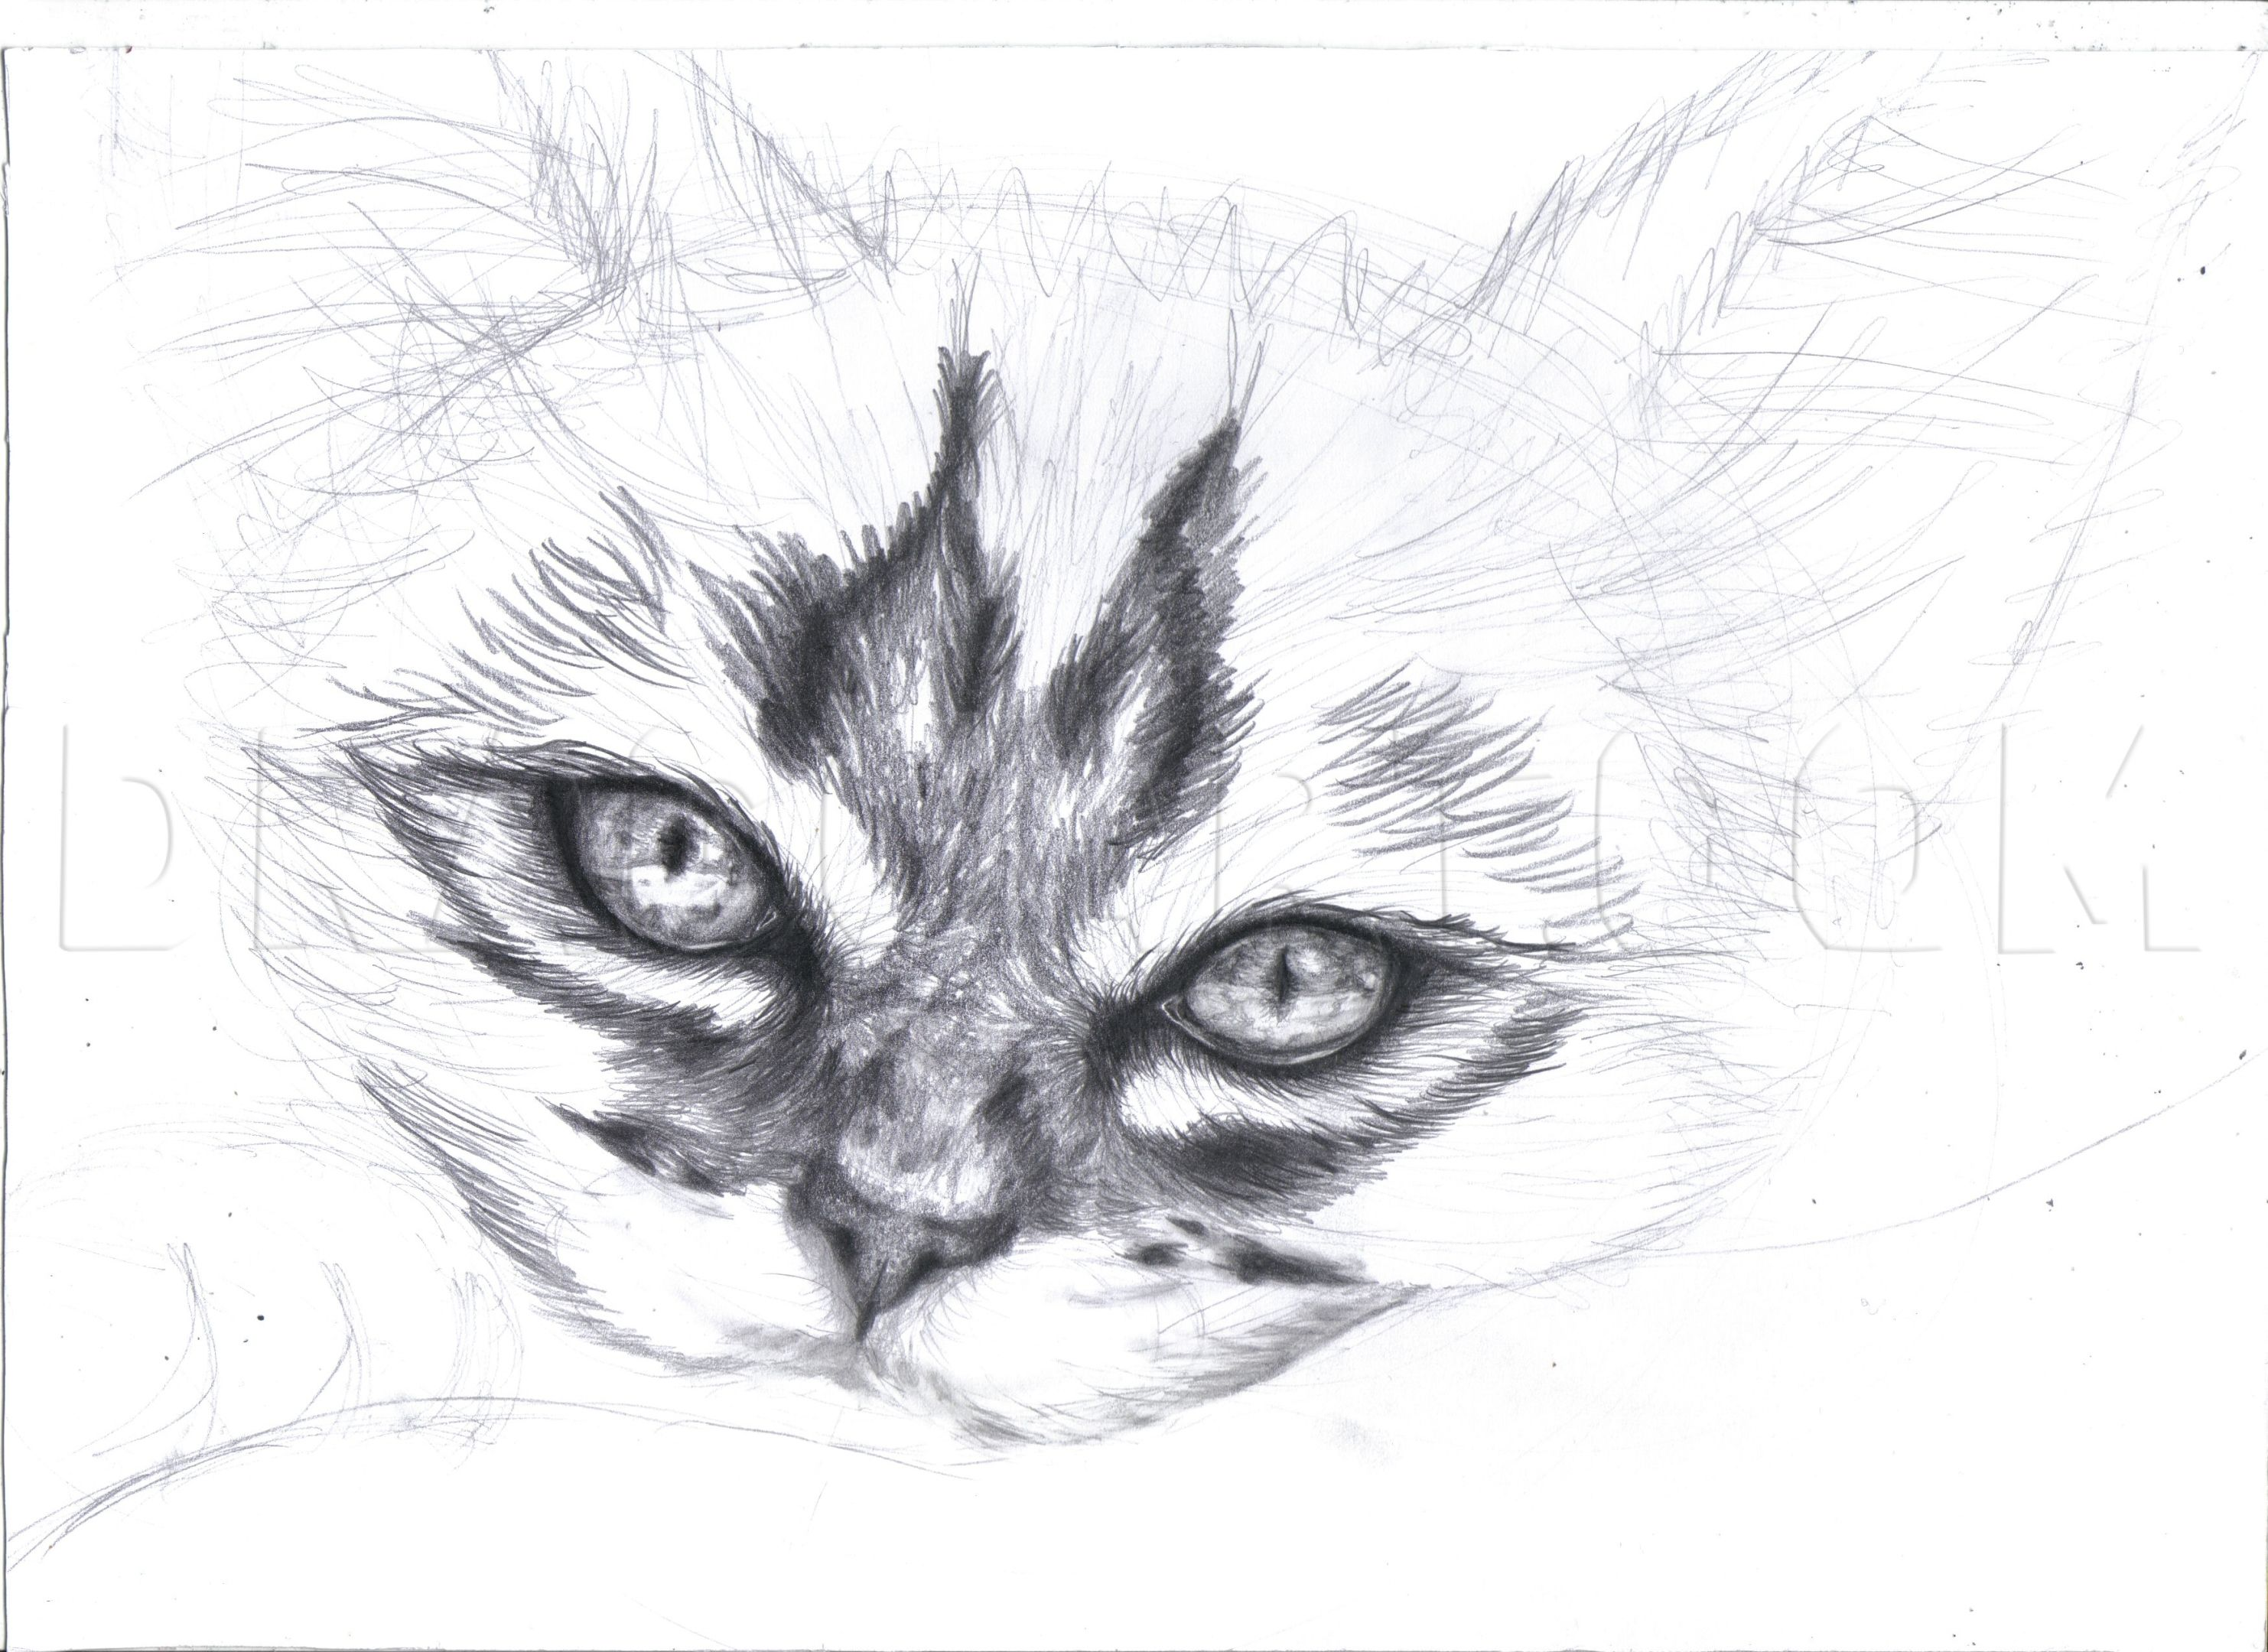 How To Draw A Realistic Kitten Cute Kitten Step By Step Drawing Guide By Duskeyes969 Drago In 2020 Realistic Cat Drawing Realistic Animal Drawings Kittens Cutest